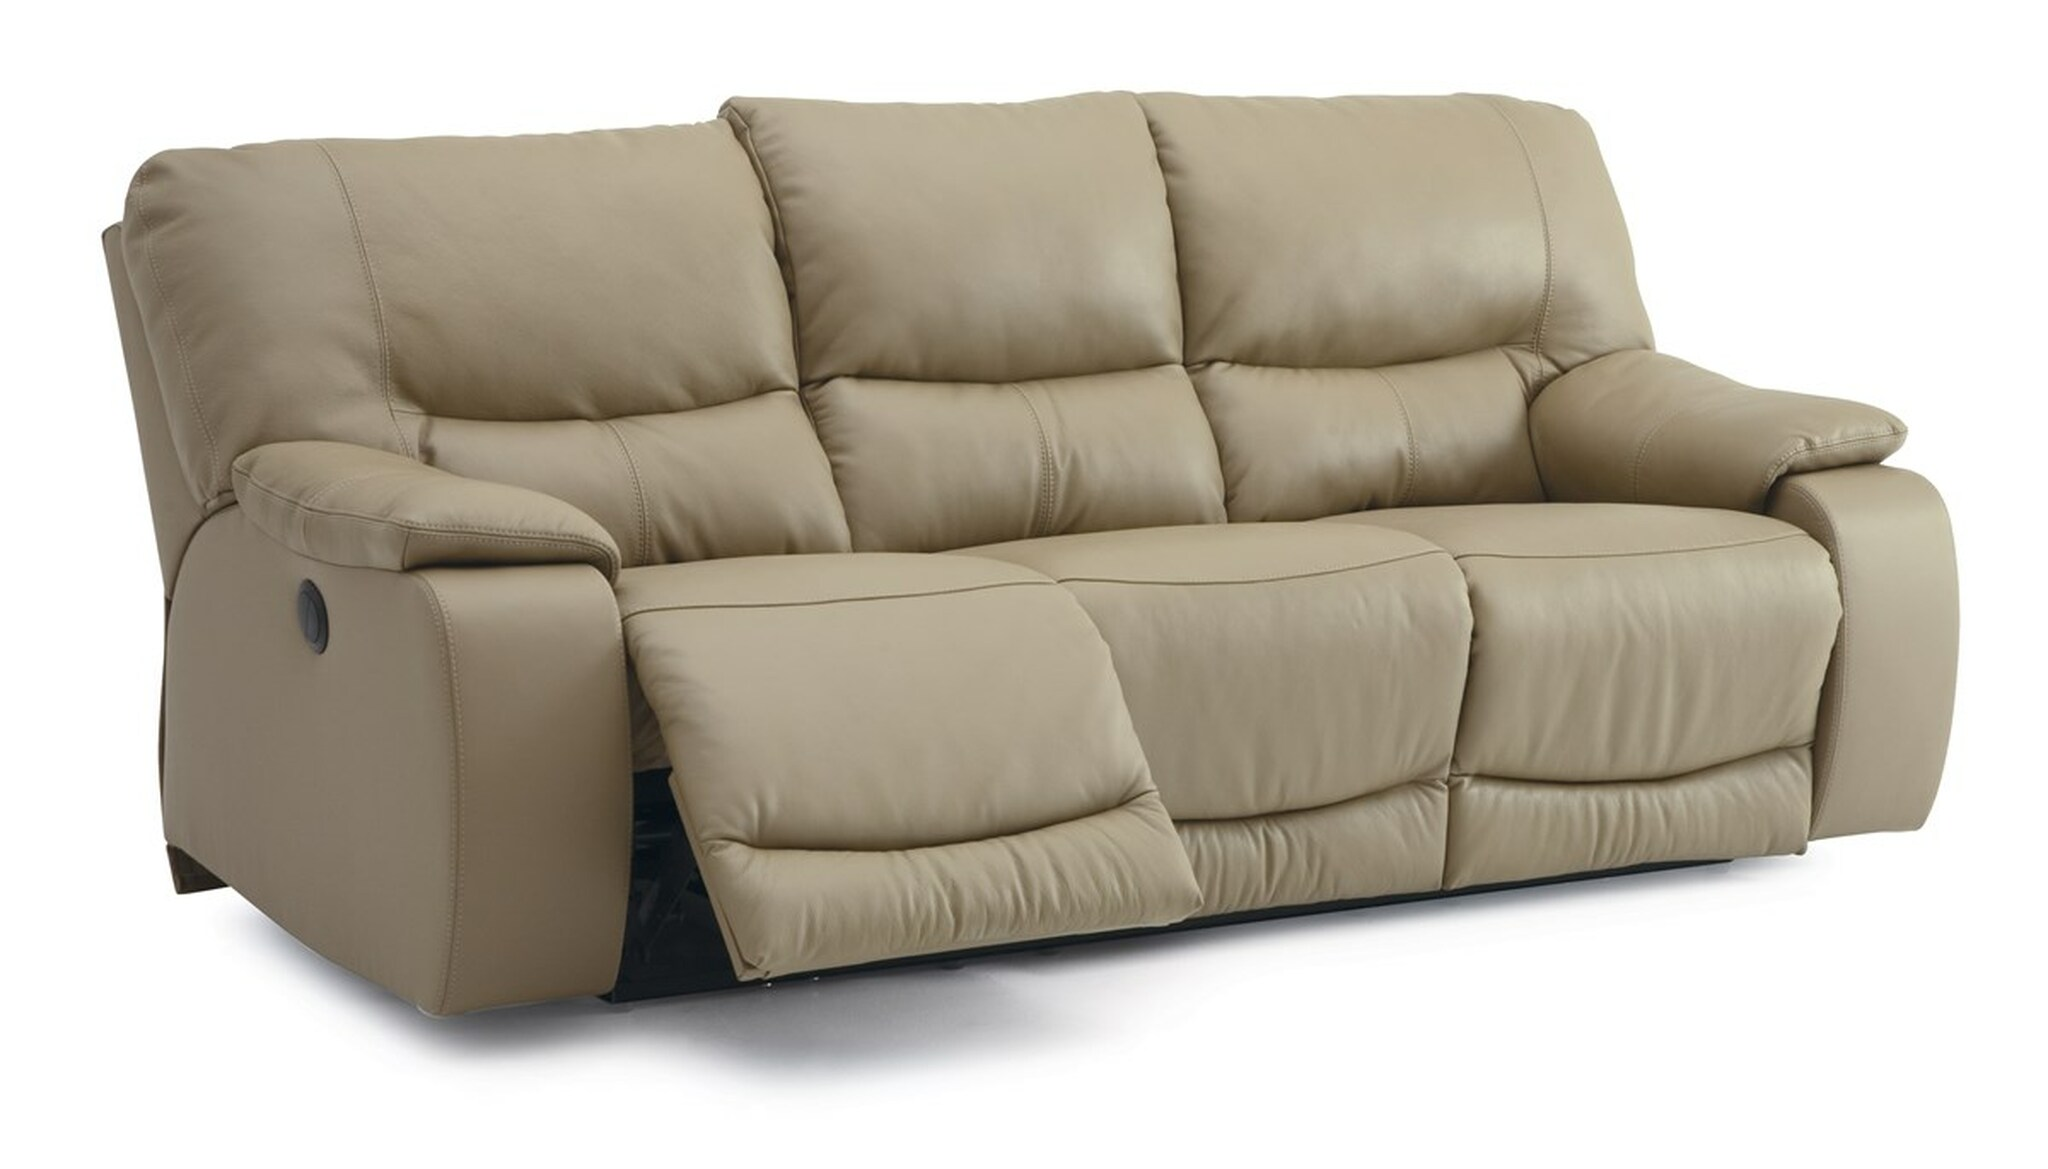 Norwood 41031 Recliner Sofa ...